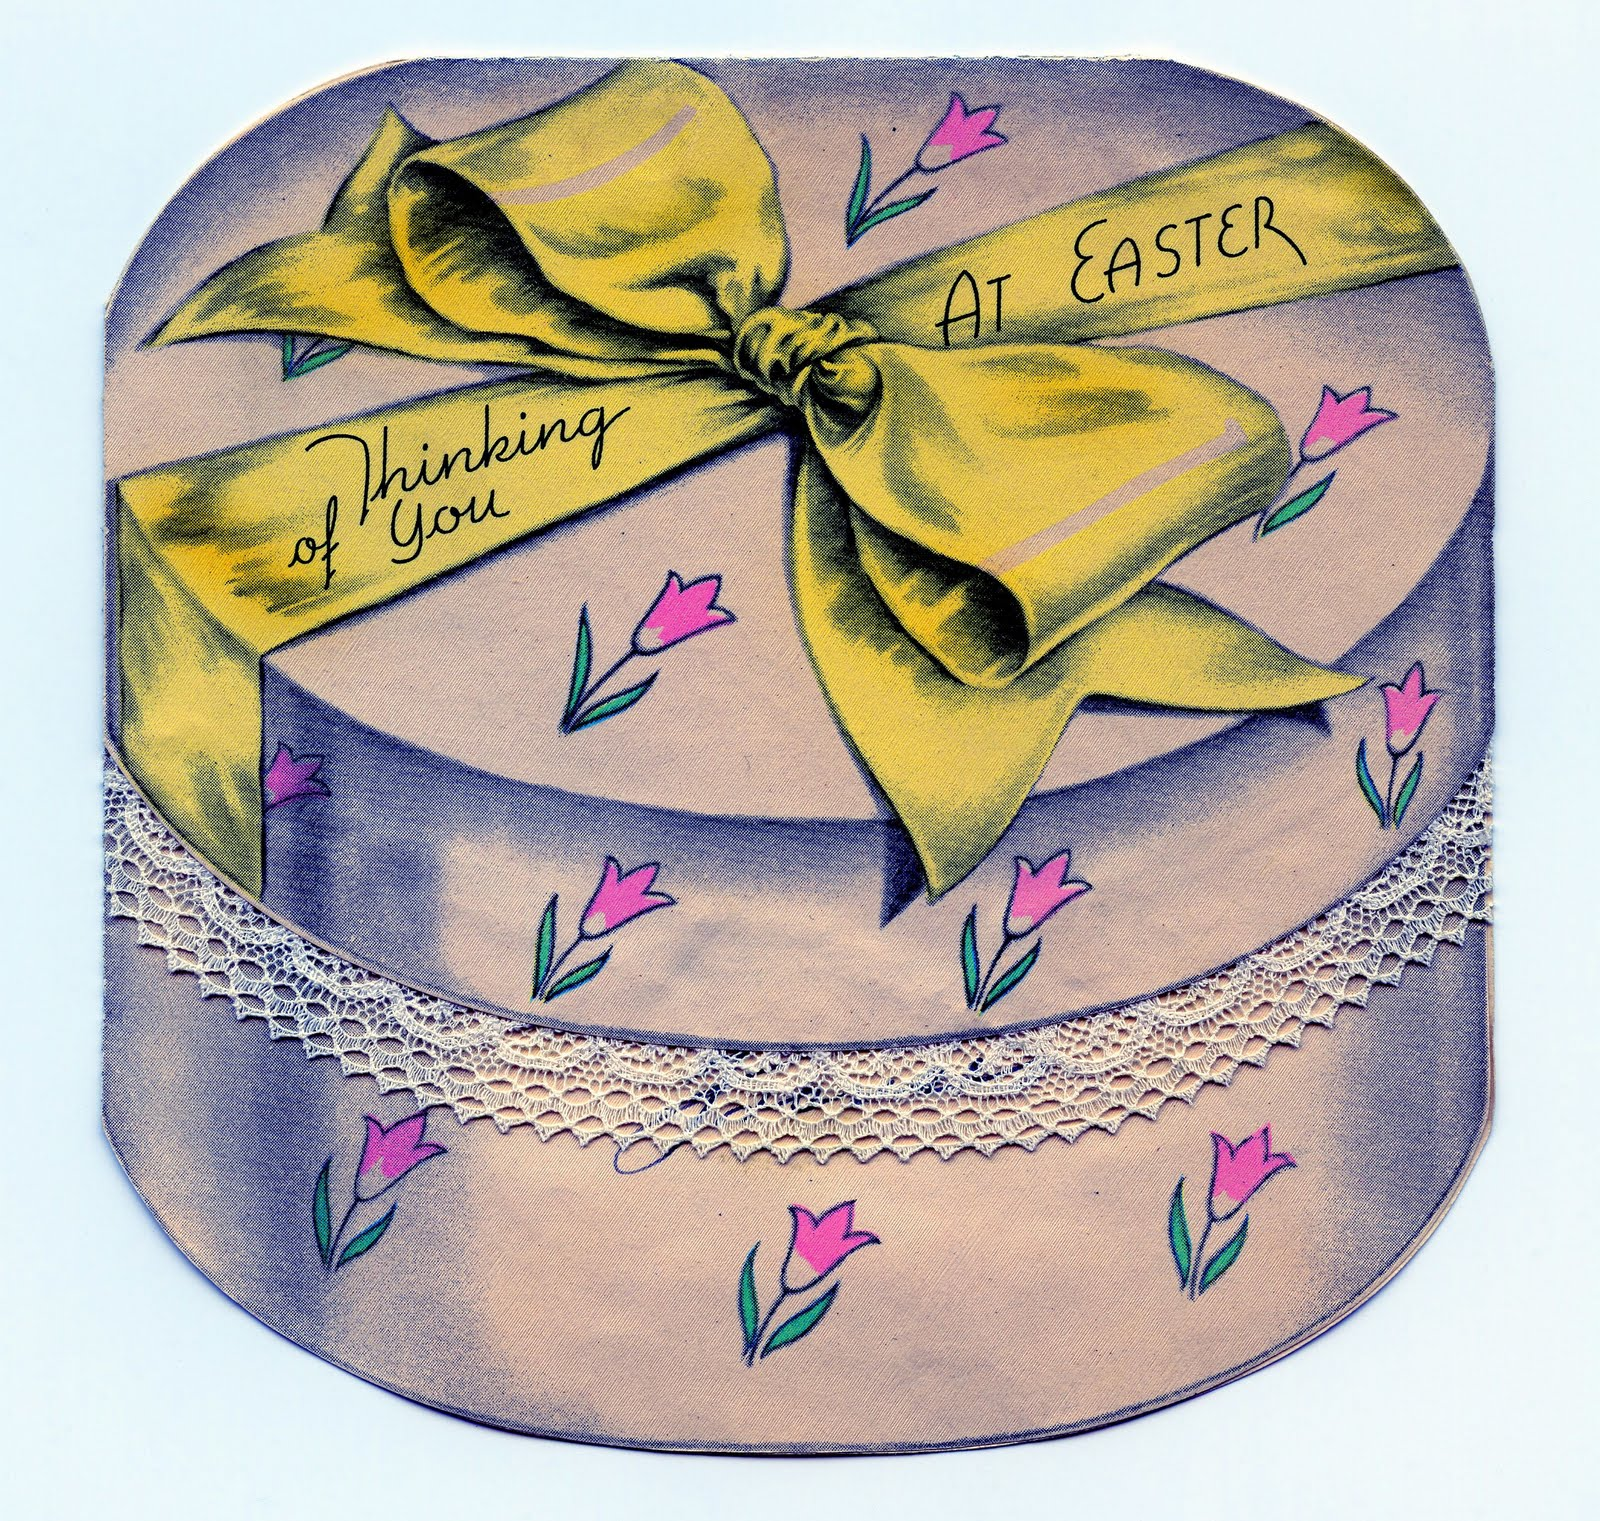 A box for you clipart clipart royalty free stock Easter Clip Art - Darling Vintage Hat Box - The Graphics Fairy clipart royalty free stock